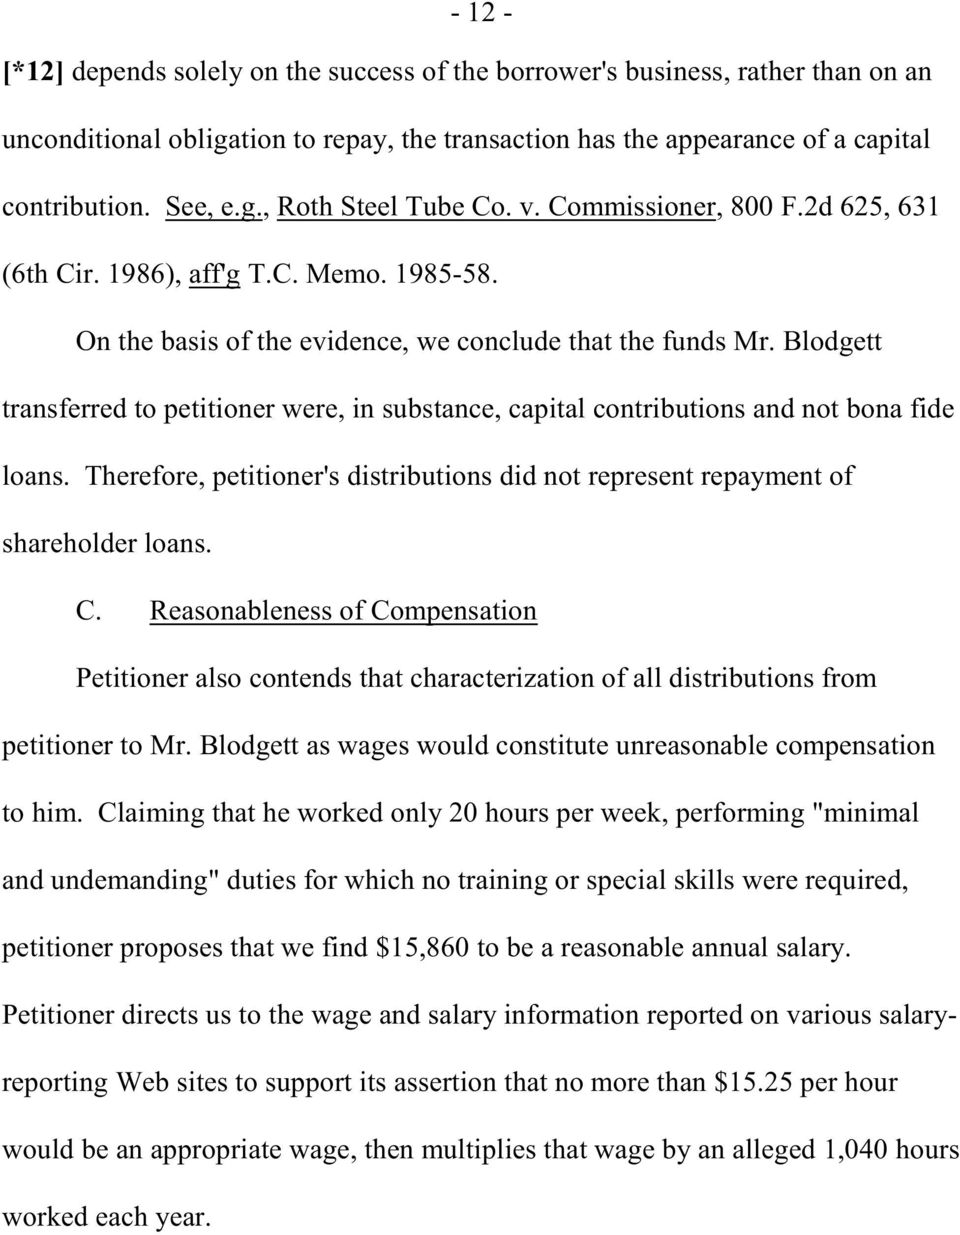 Blodgett transferred to petitioner were, in substance, capital contributions and not bona fide loans. Therefore, petitioner's distributions did not represent repayment of shareholder loans. C.